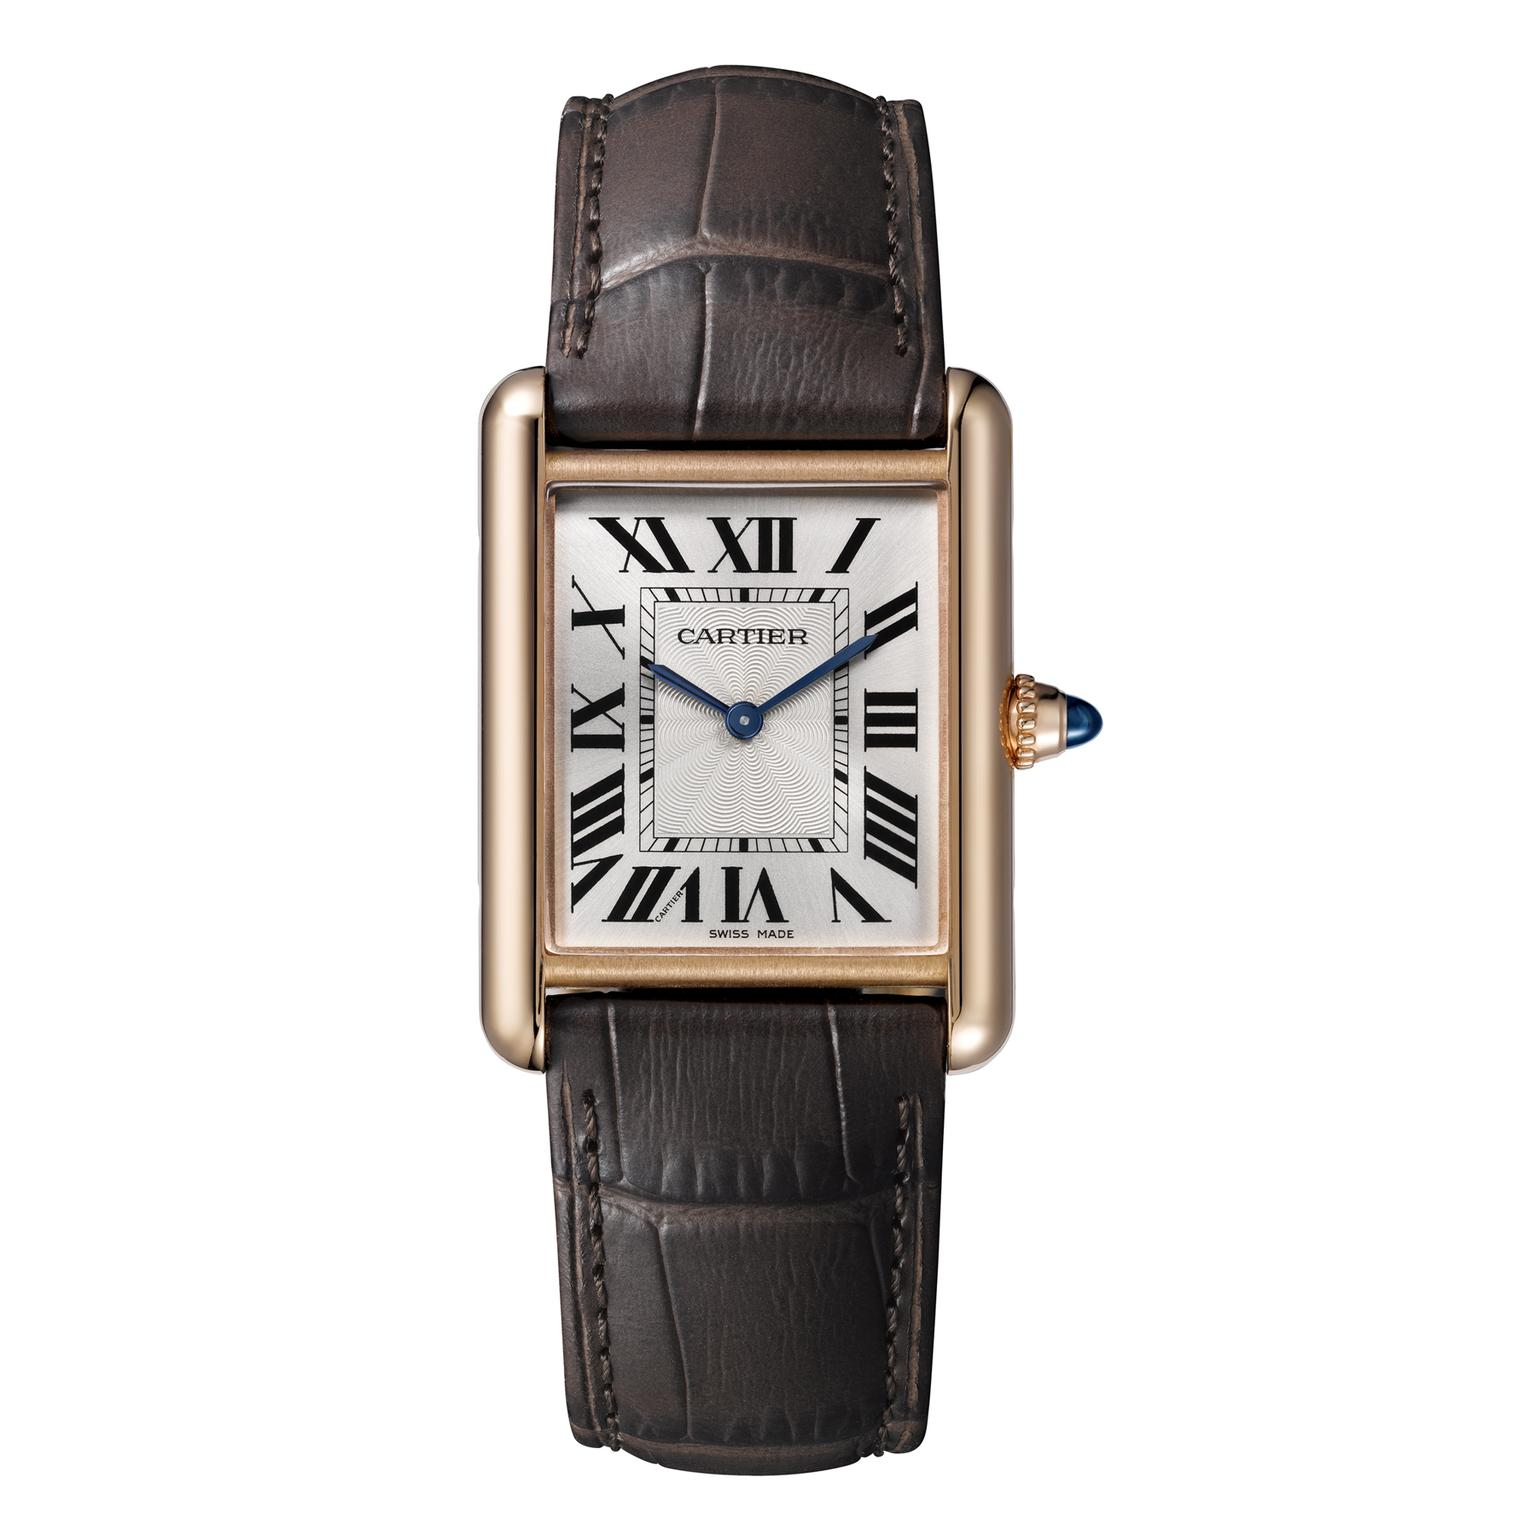 Tank Louis Cartier large watch in pink gold   Cartier   The     Cartier Tank Louis Cartier large pink gold watch